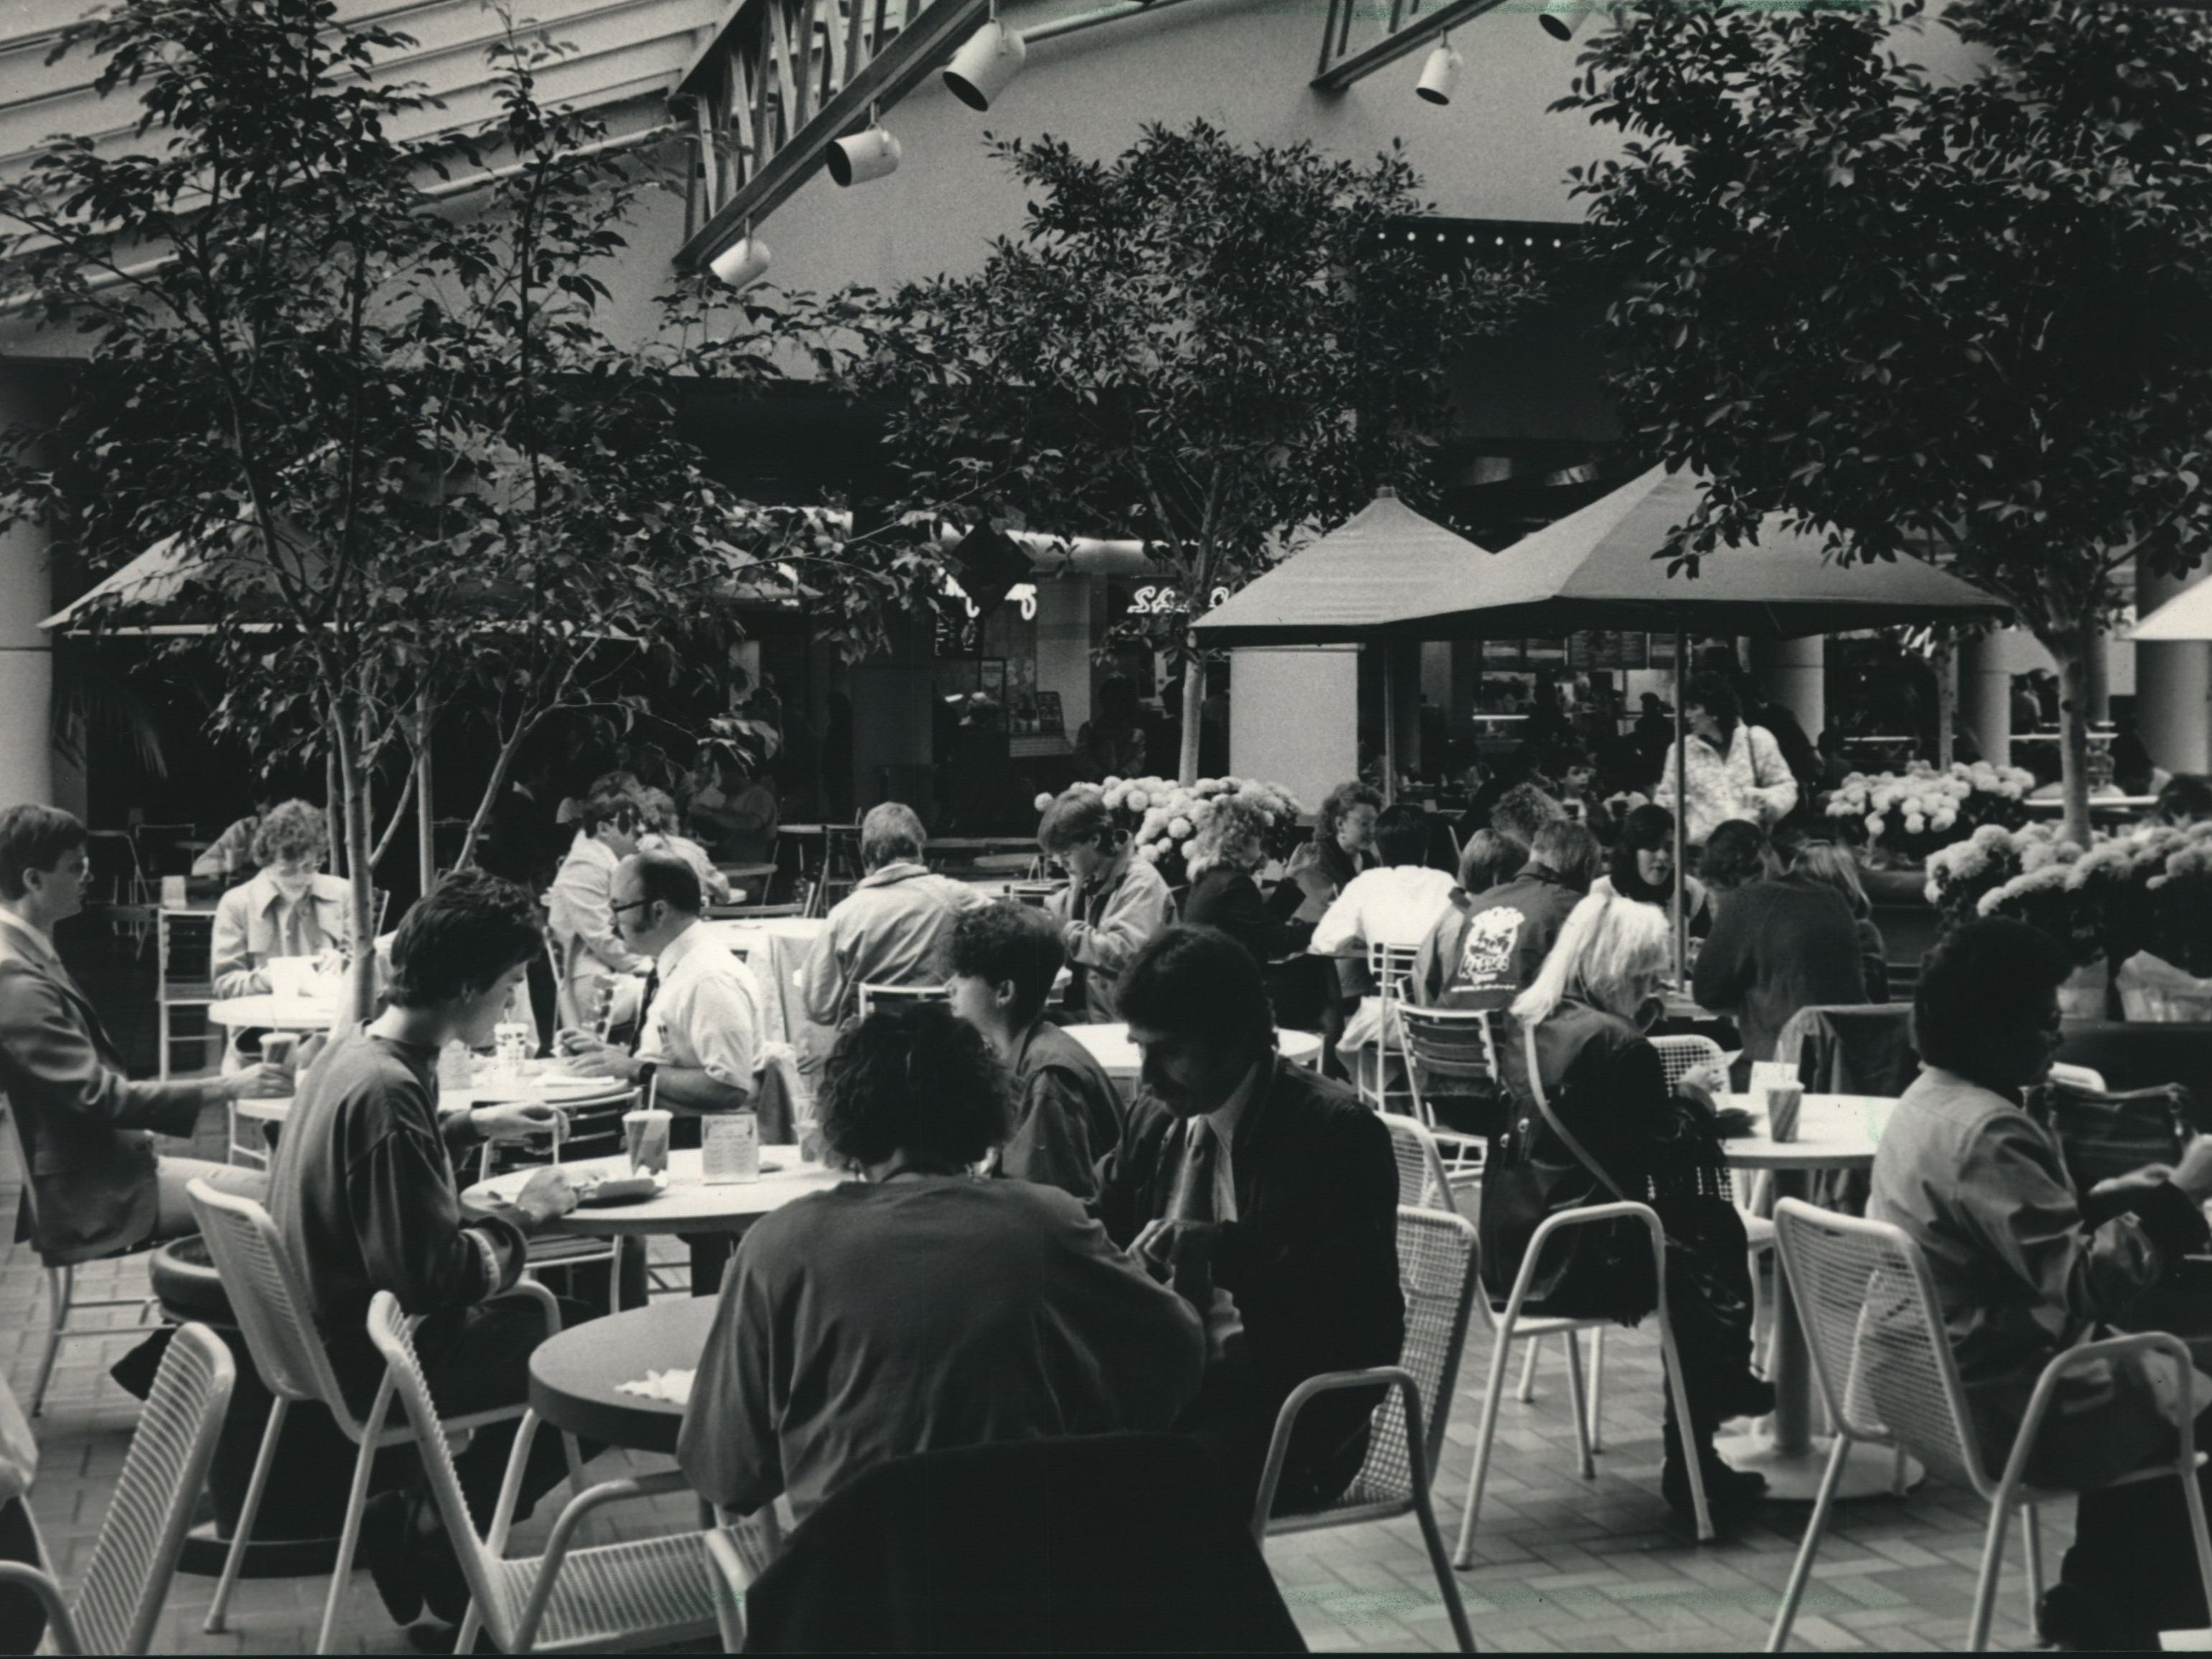 The lunchtime crowd usually fills all available tables at the Speisegarten at the Grand Avenue Mall in Milwaukee